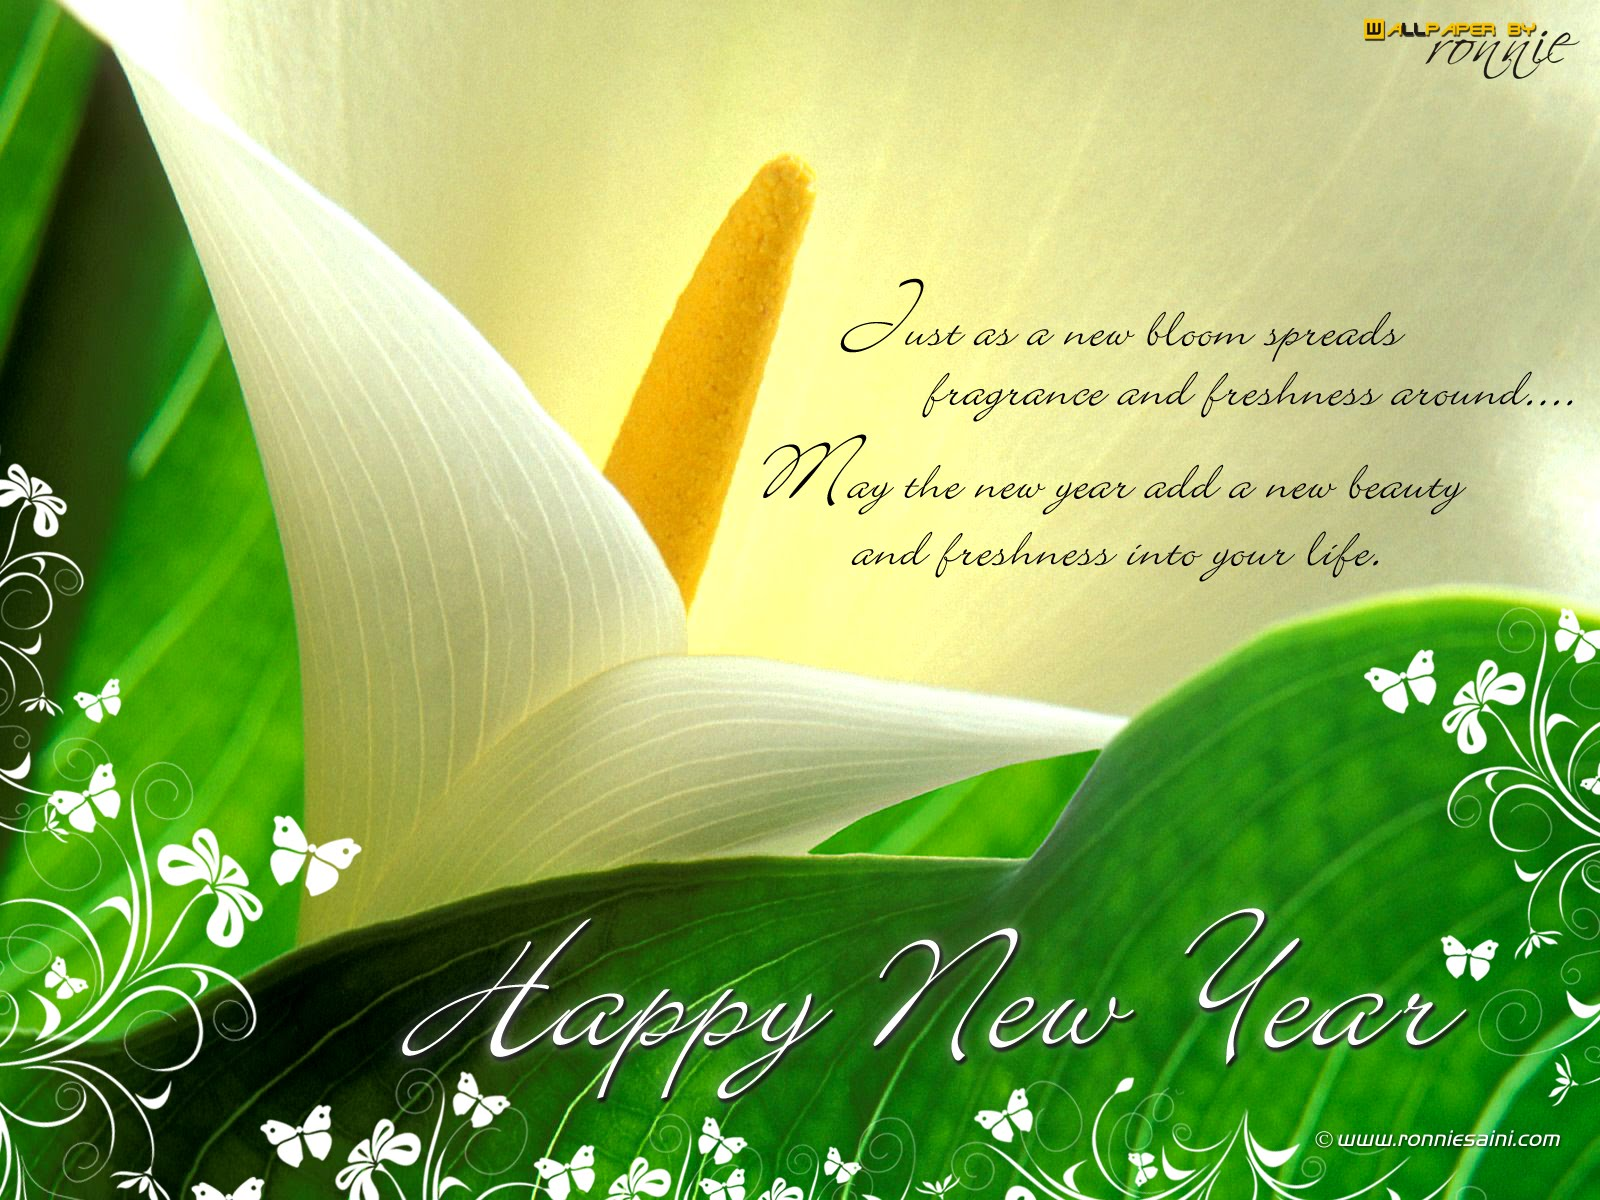 2013 New Year Wishes Wallpapers and sms. 1600 x 1200.Chinese New Year Sayings Greetings